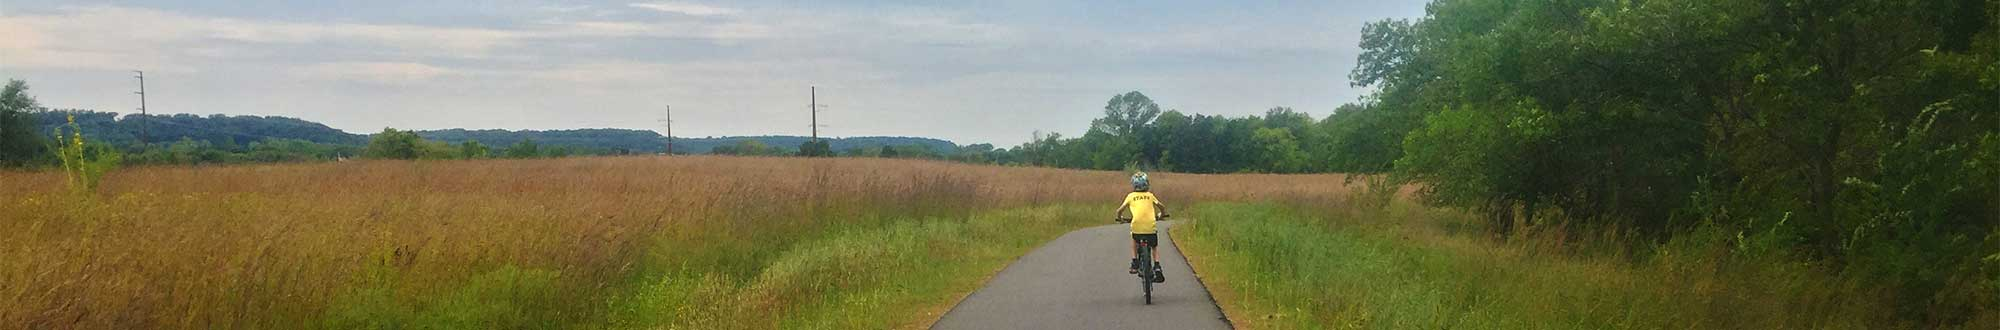 boy biycling along trail